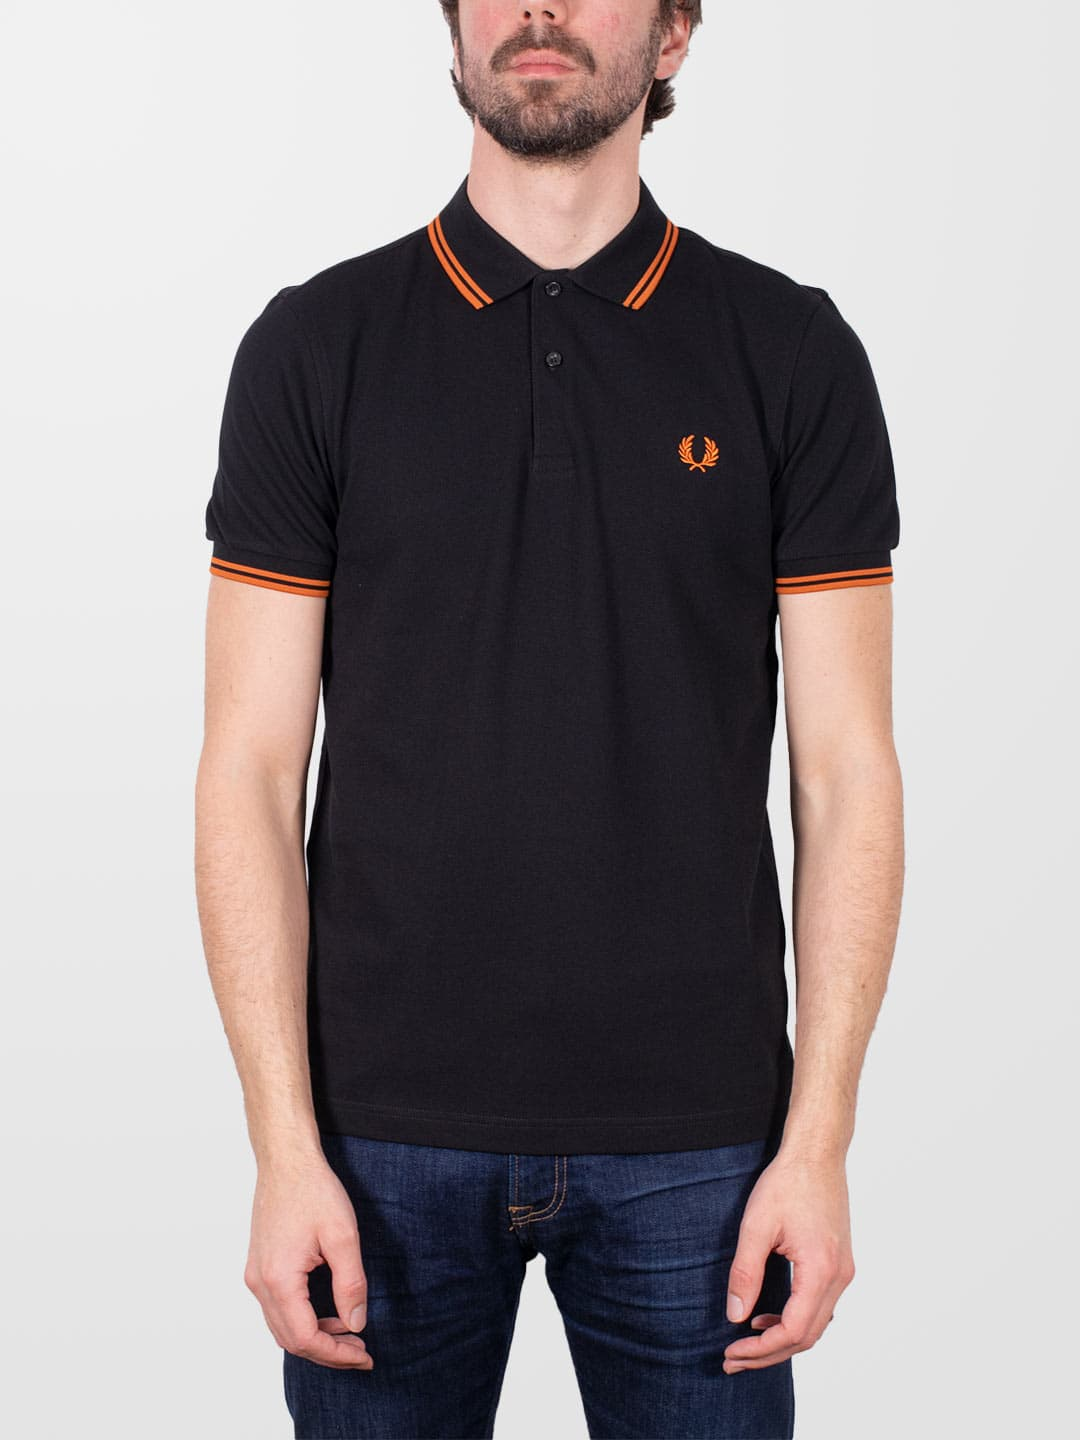 FRED PERRY Black & Rust Twin Tipped SS Polo Shirt